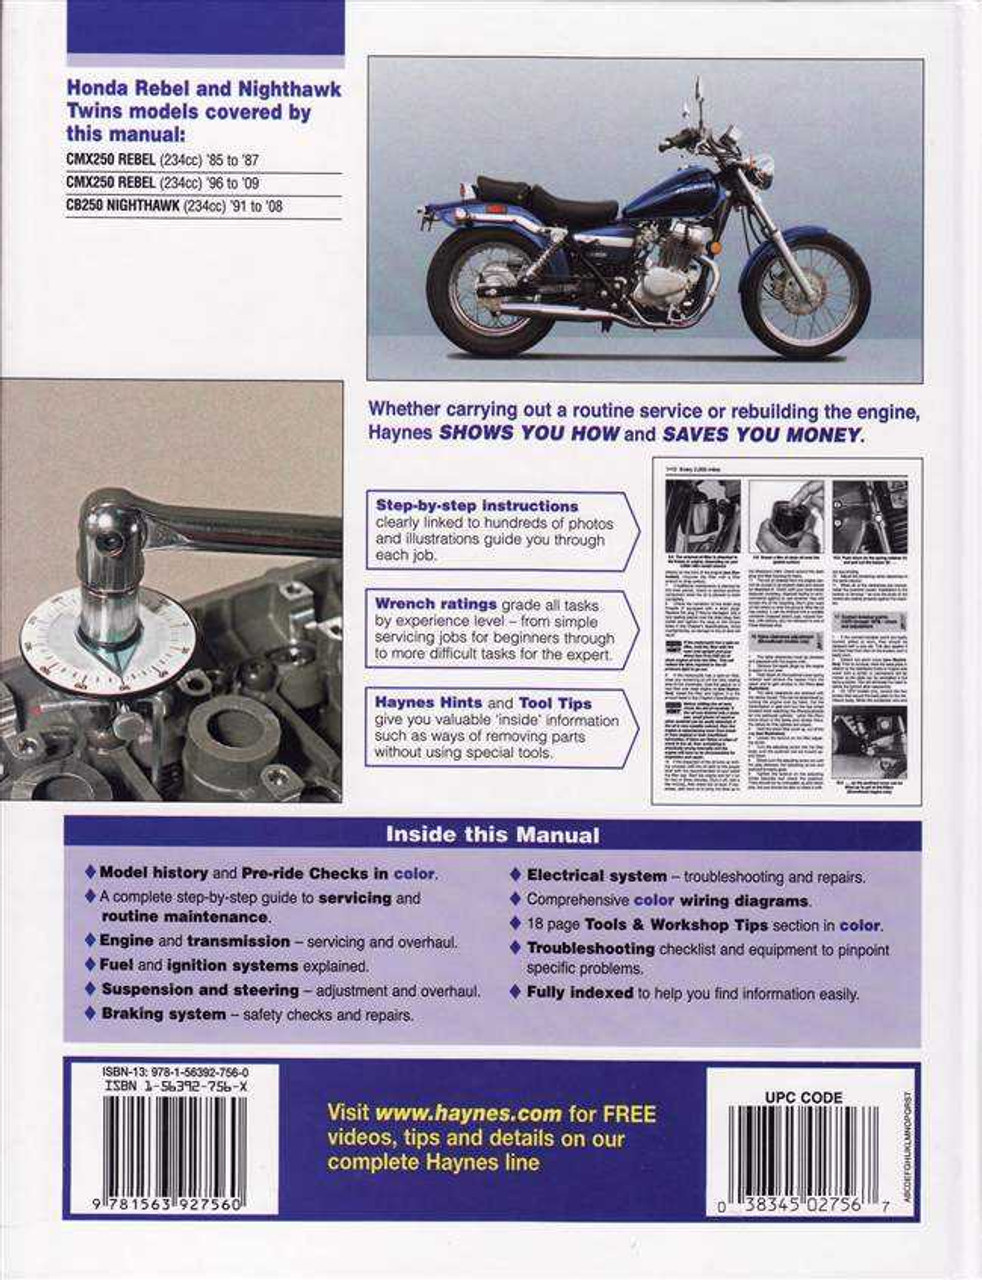 Enjoyable Honda Cmx250 Rebel Cb250 Nighthawk Twins 1985 2009 Workshop Manual Wiring 101 Capemaxxcnl